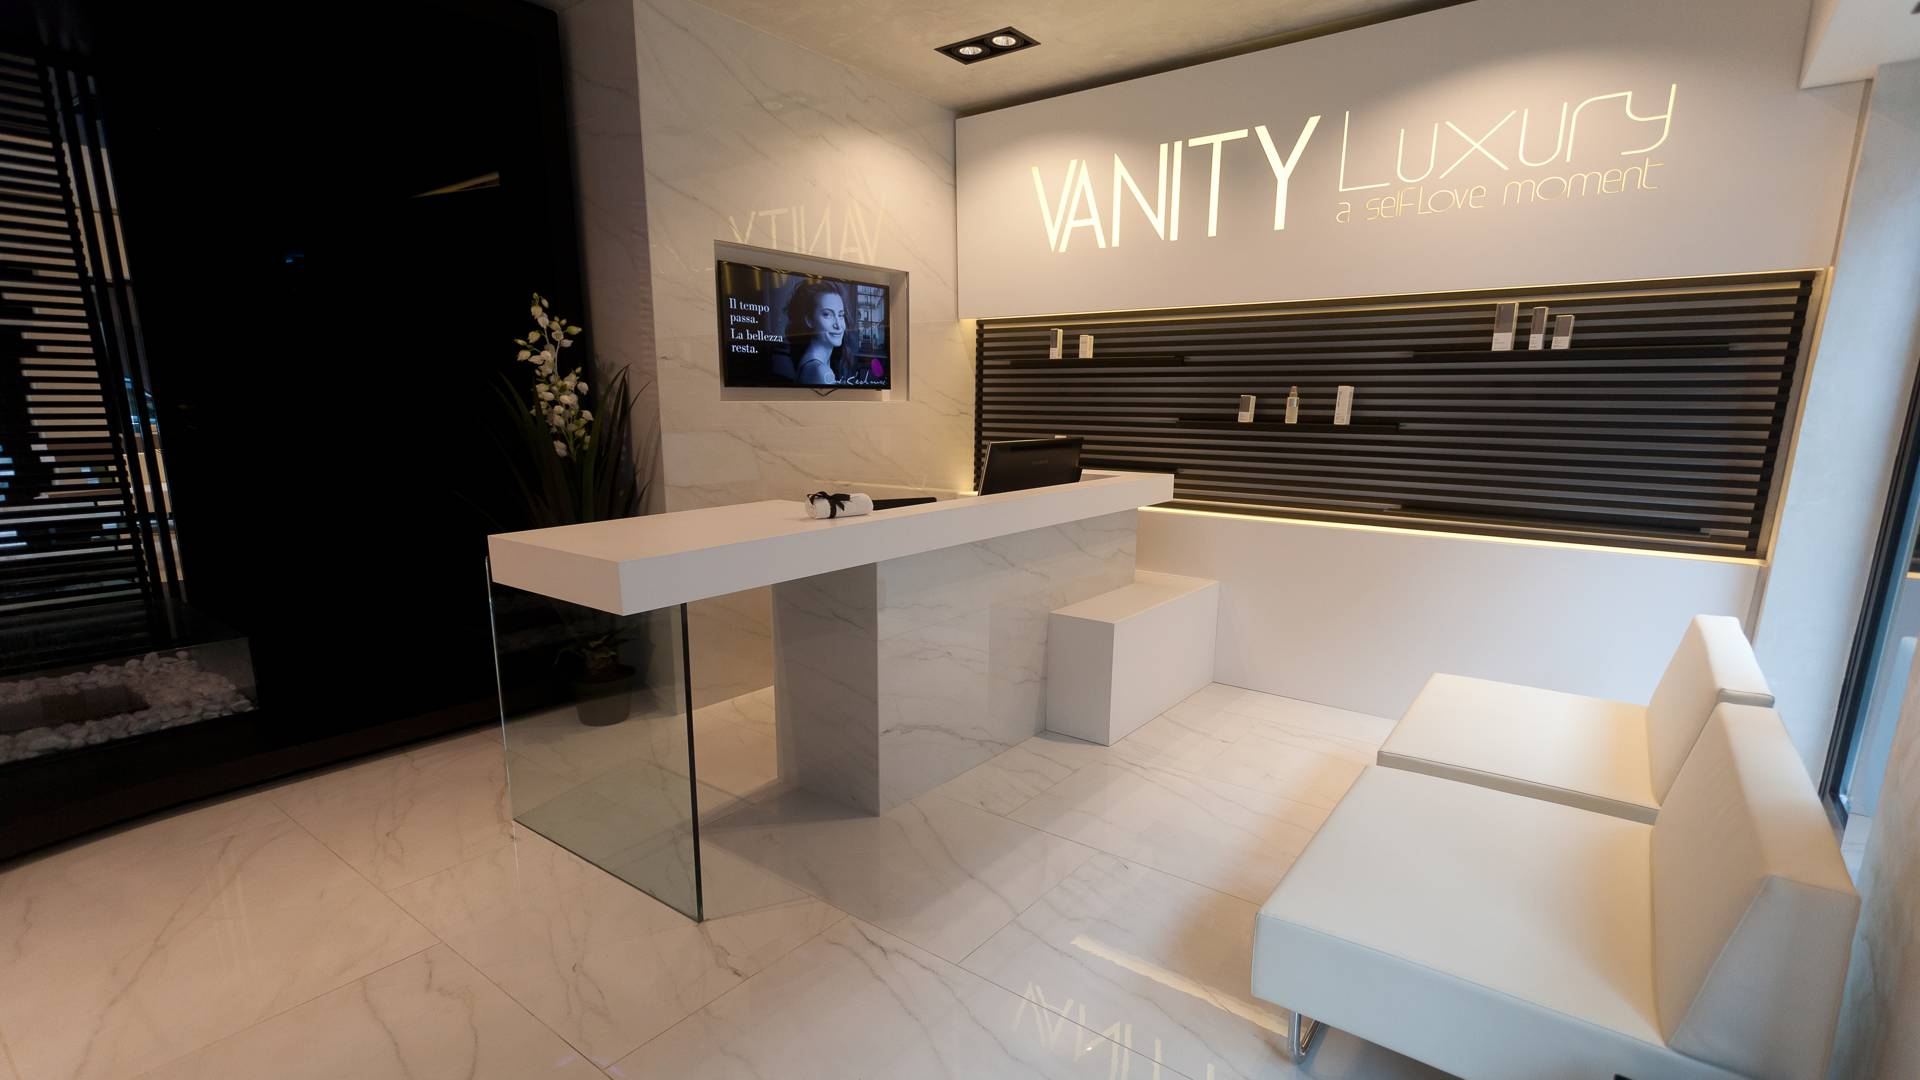 Vanity Luxury - Hall